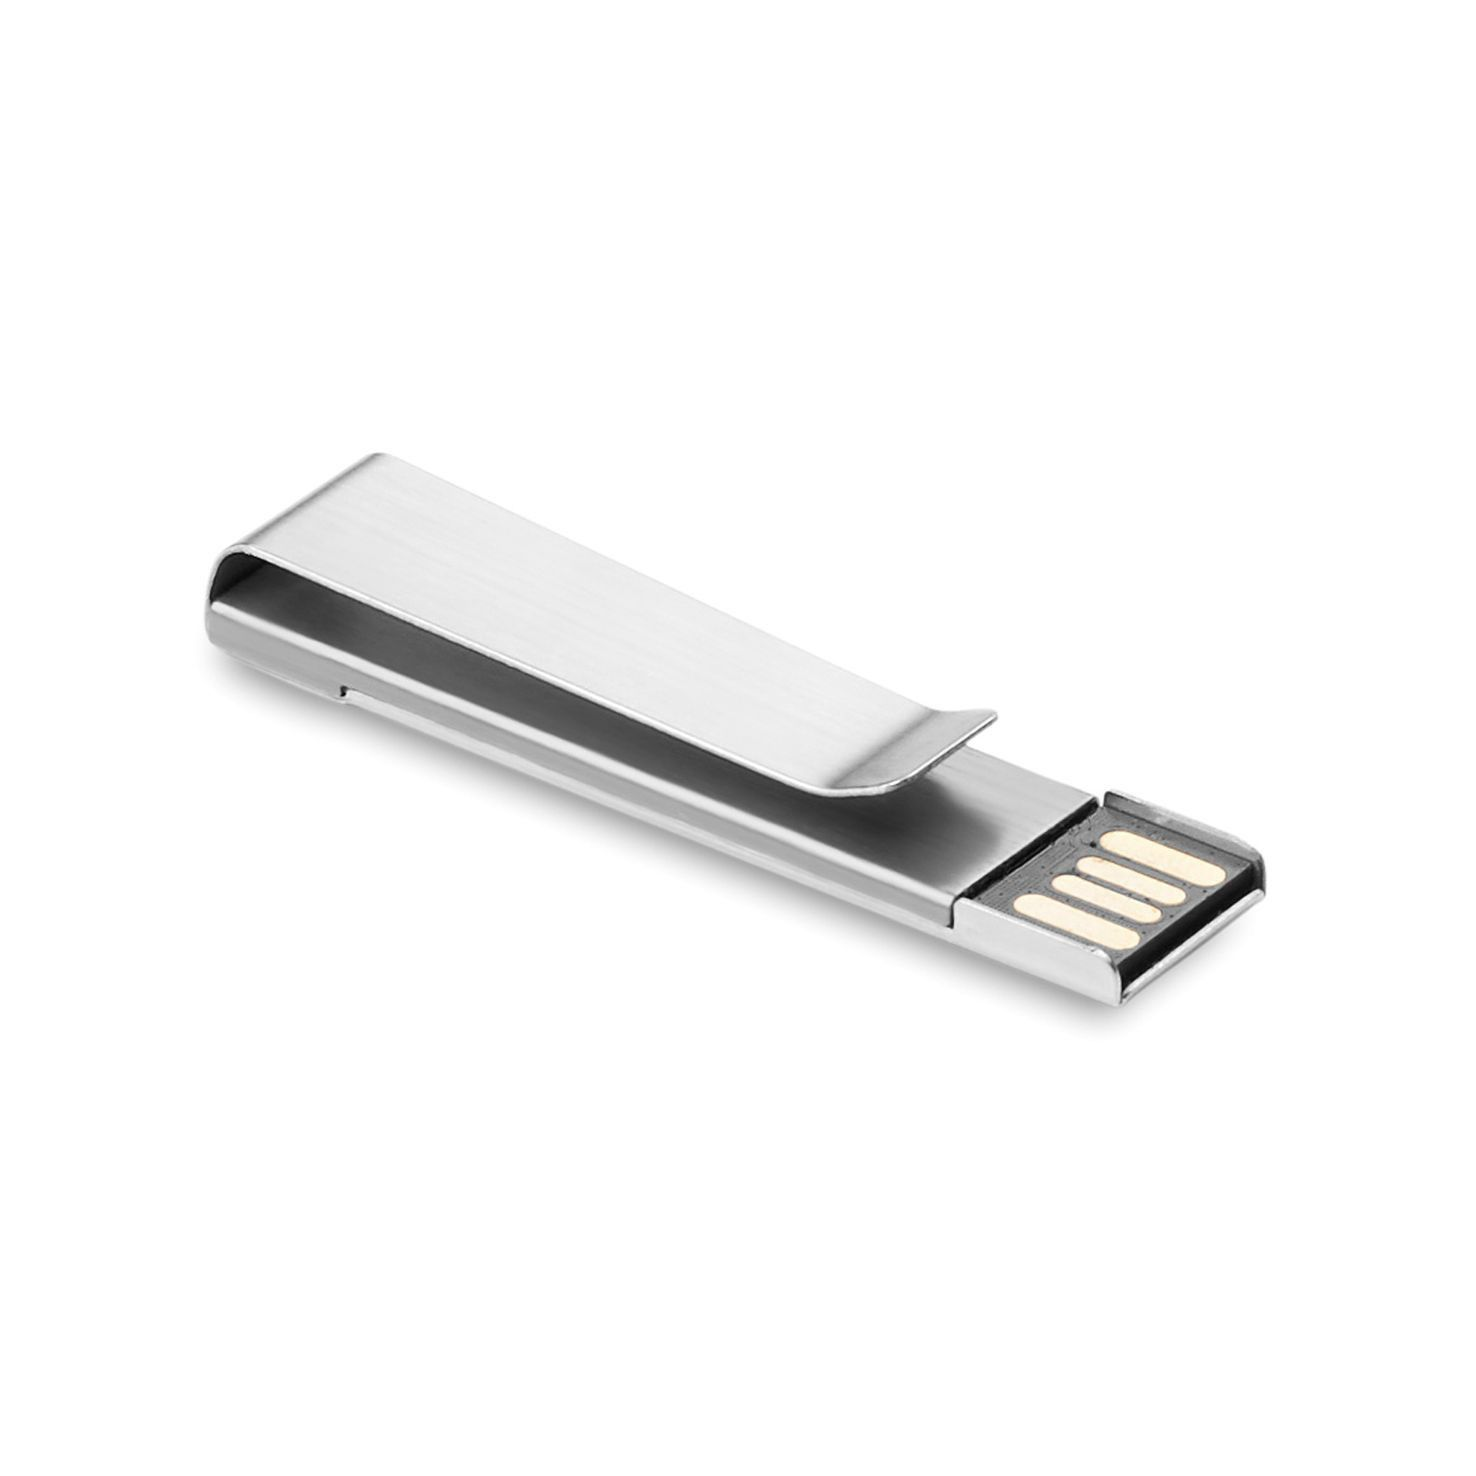 Zilvere USB stick | Metalen clip | 8GB